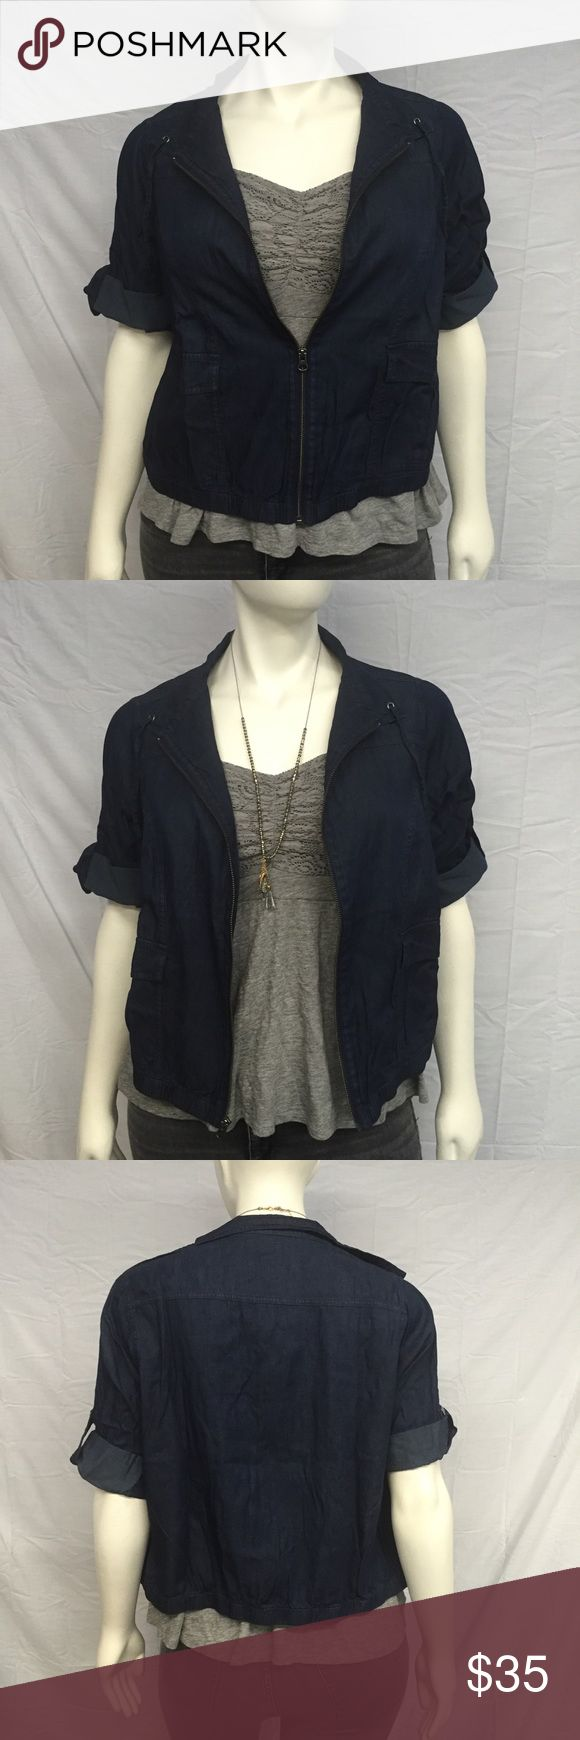 Torrid Denim Jacket Cute denim jacket from torrid! Drawstring neck. Roll tabs that can be unrolled to three quarter sleeves. Elastic hem. Two large front pockets. New with tags, never worn. Smoke and pet free home. A torrid size 0 is the equivalent of a 0X. torrid Jackets & Coats Jean Jackets